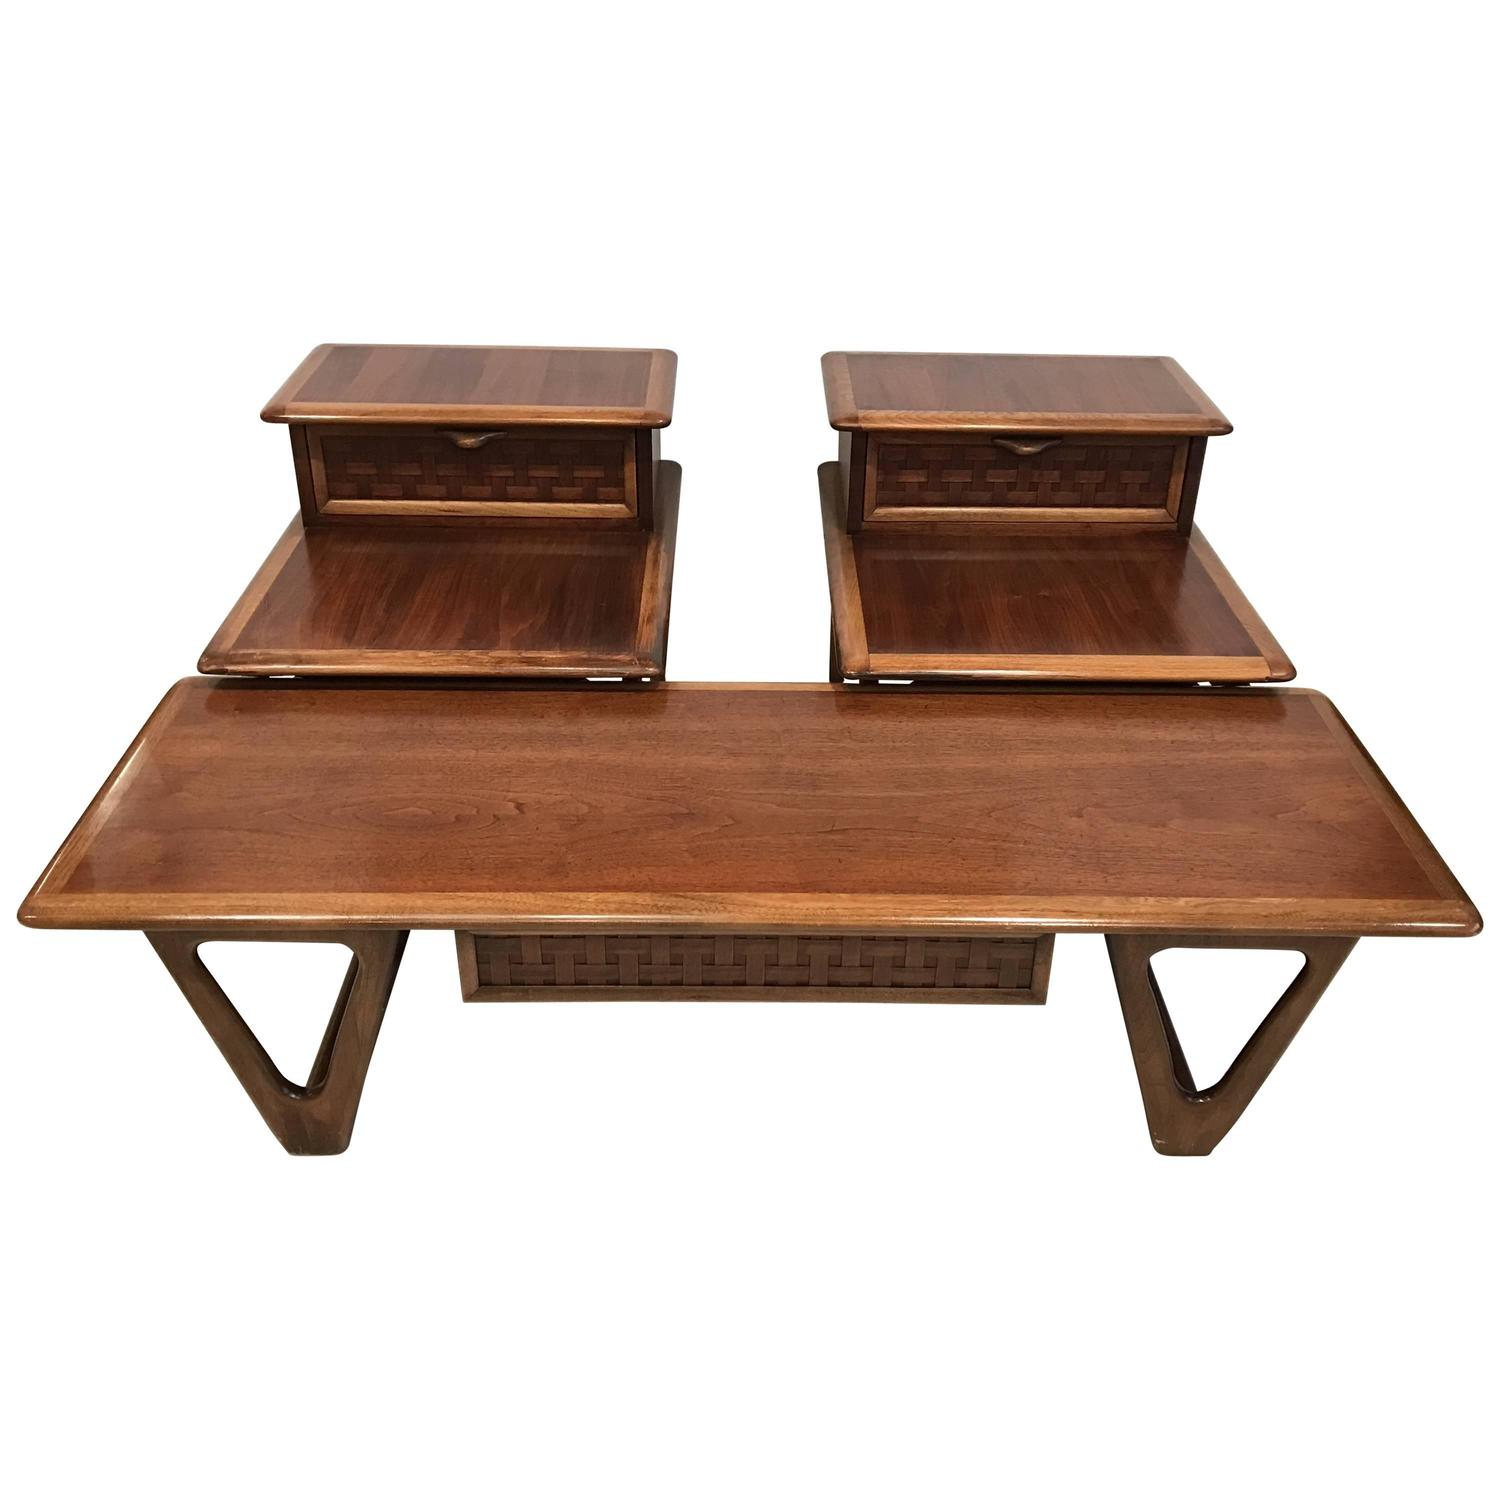 Pair of Mid Century End Tables and Coffee Table by Andre Bus for